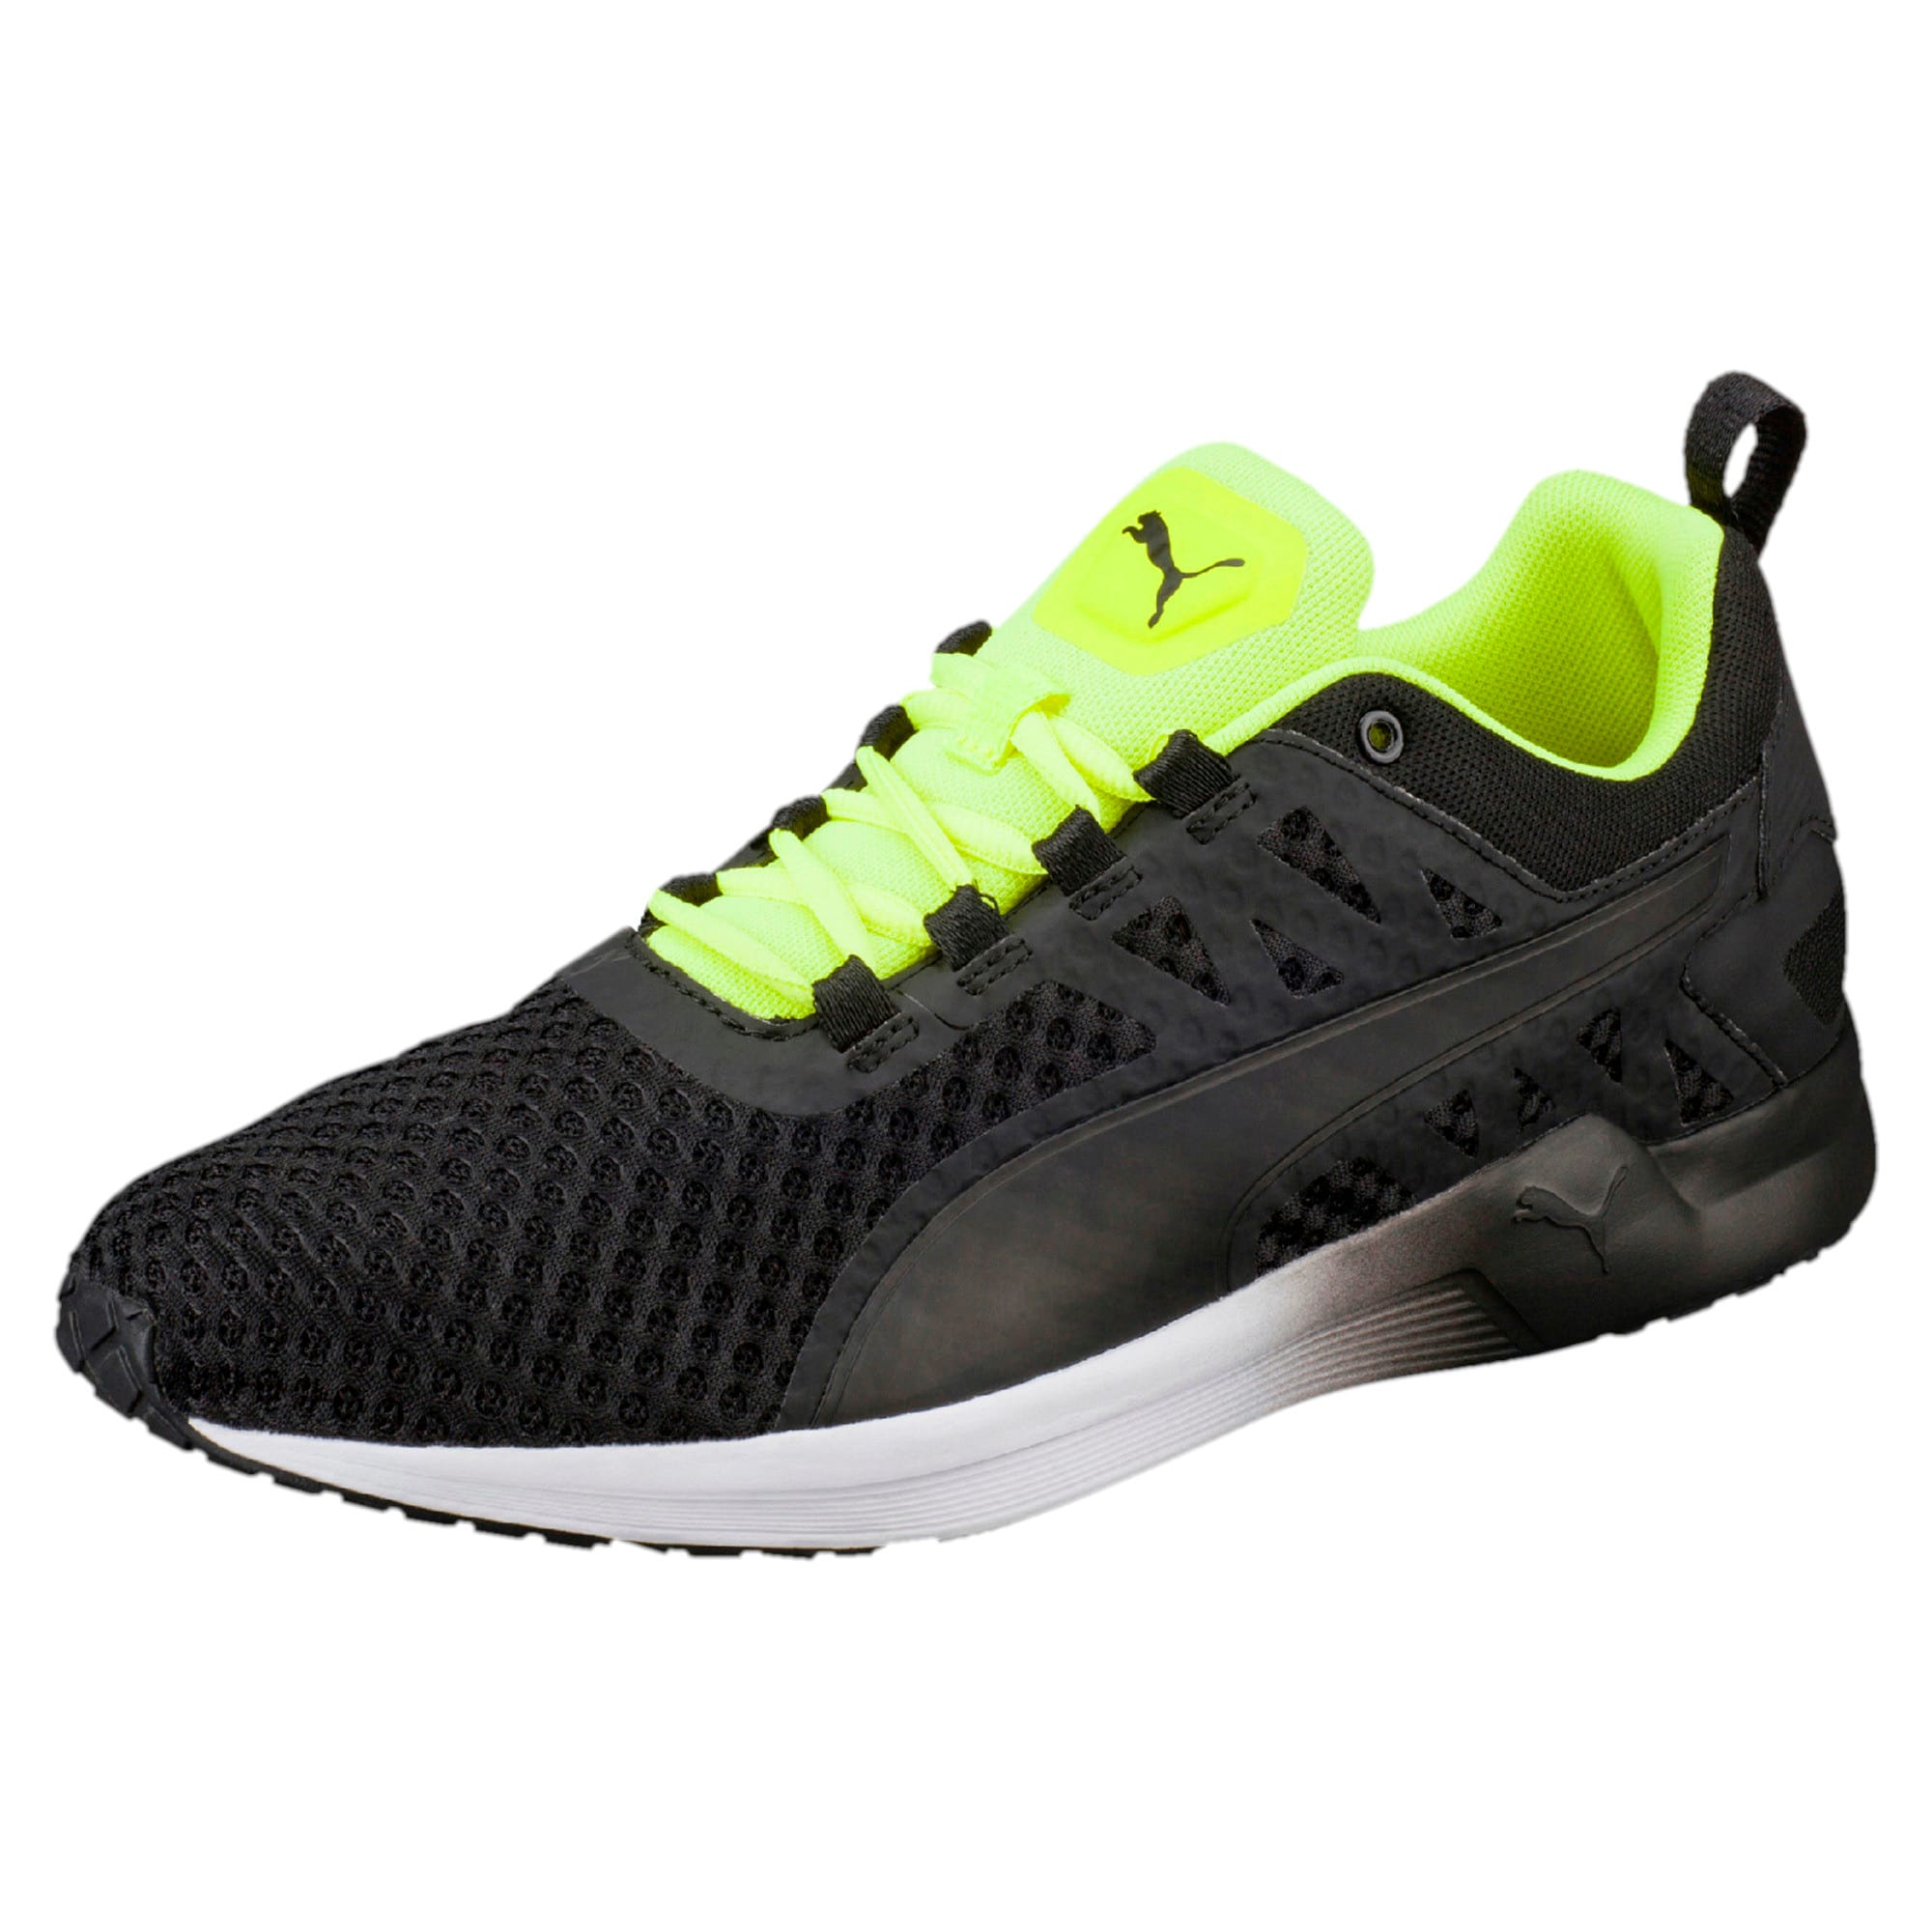 Thumbnail 1 of Pulse XT v2 Mesh Men's Training Shoes, Puma Black-Safety Yellow, medium-IND